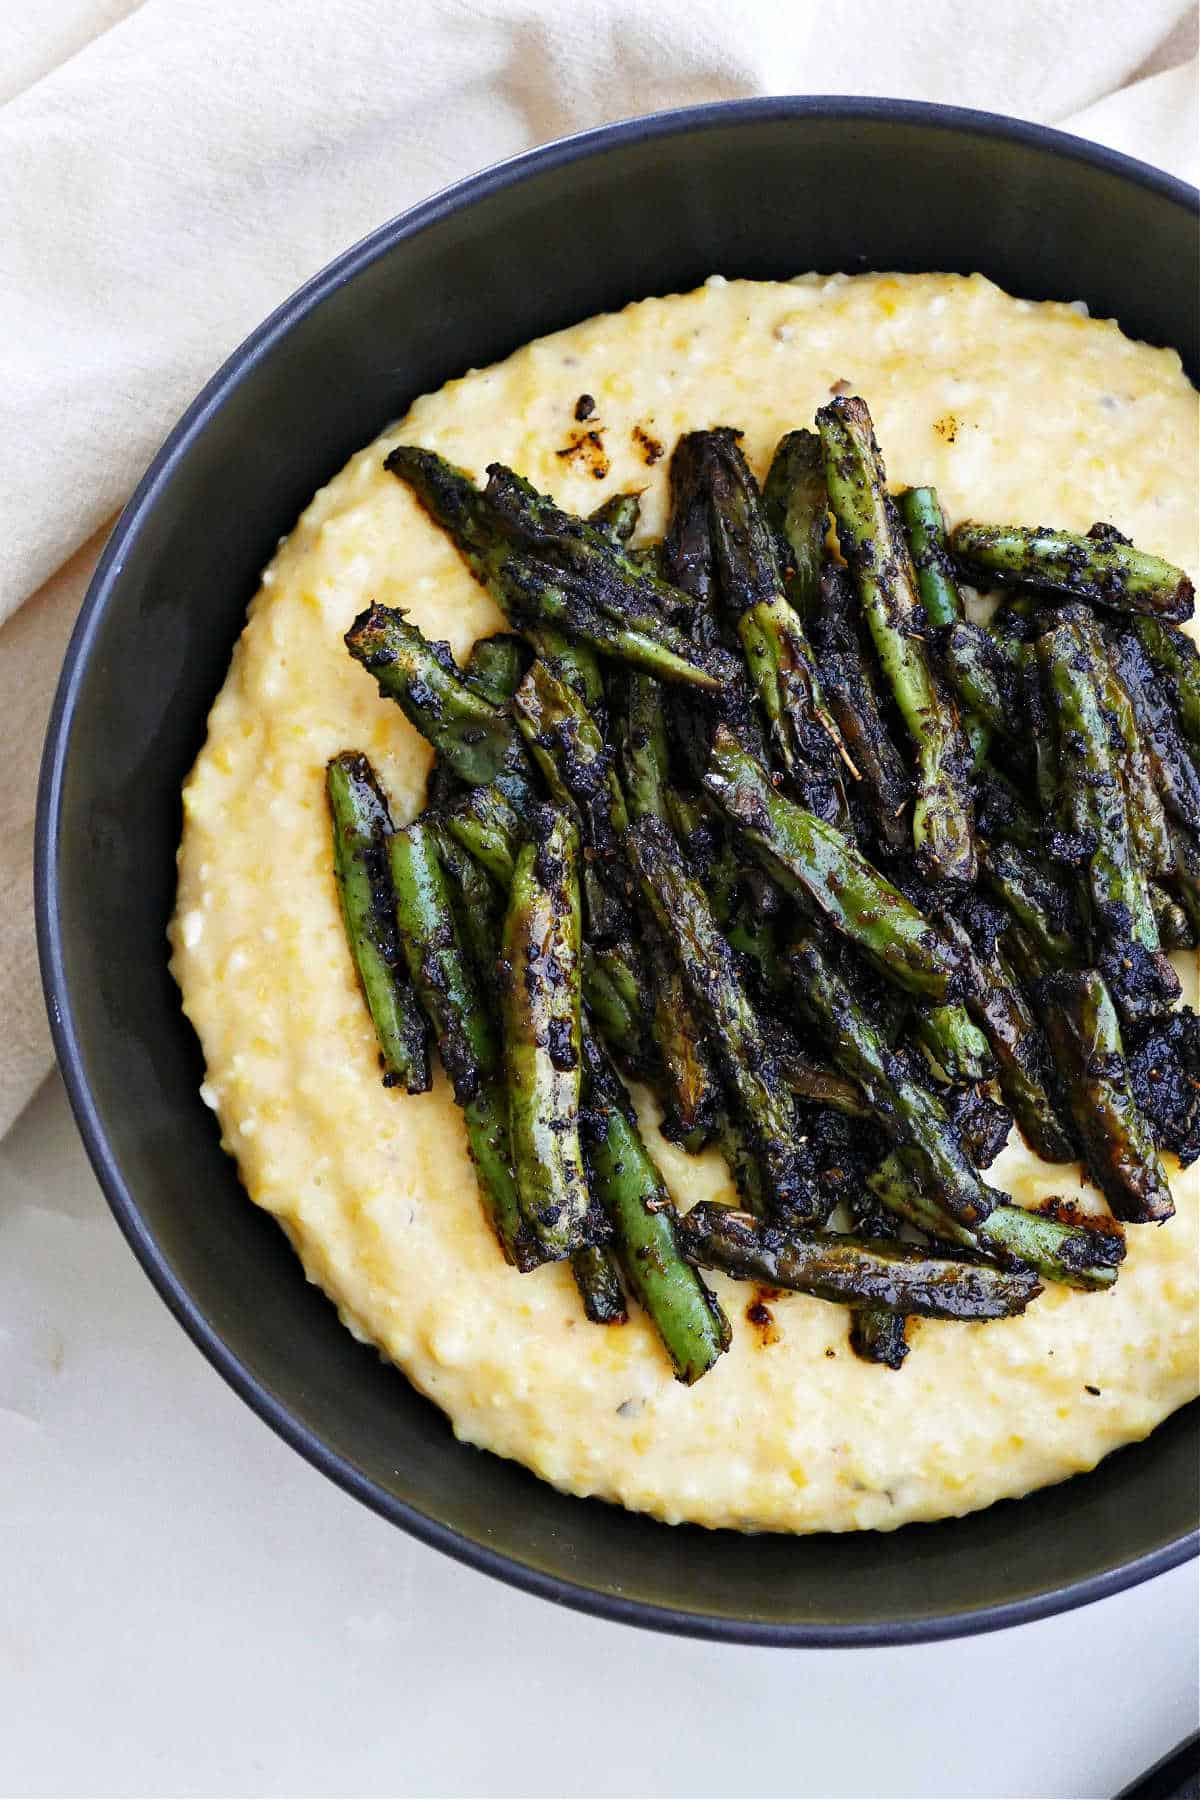 blackened green beans sitting on top of cheesy grits in a serving bowl